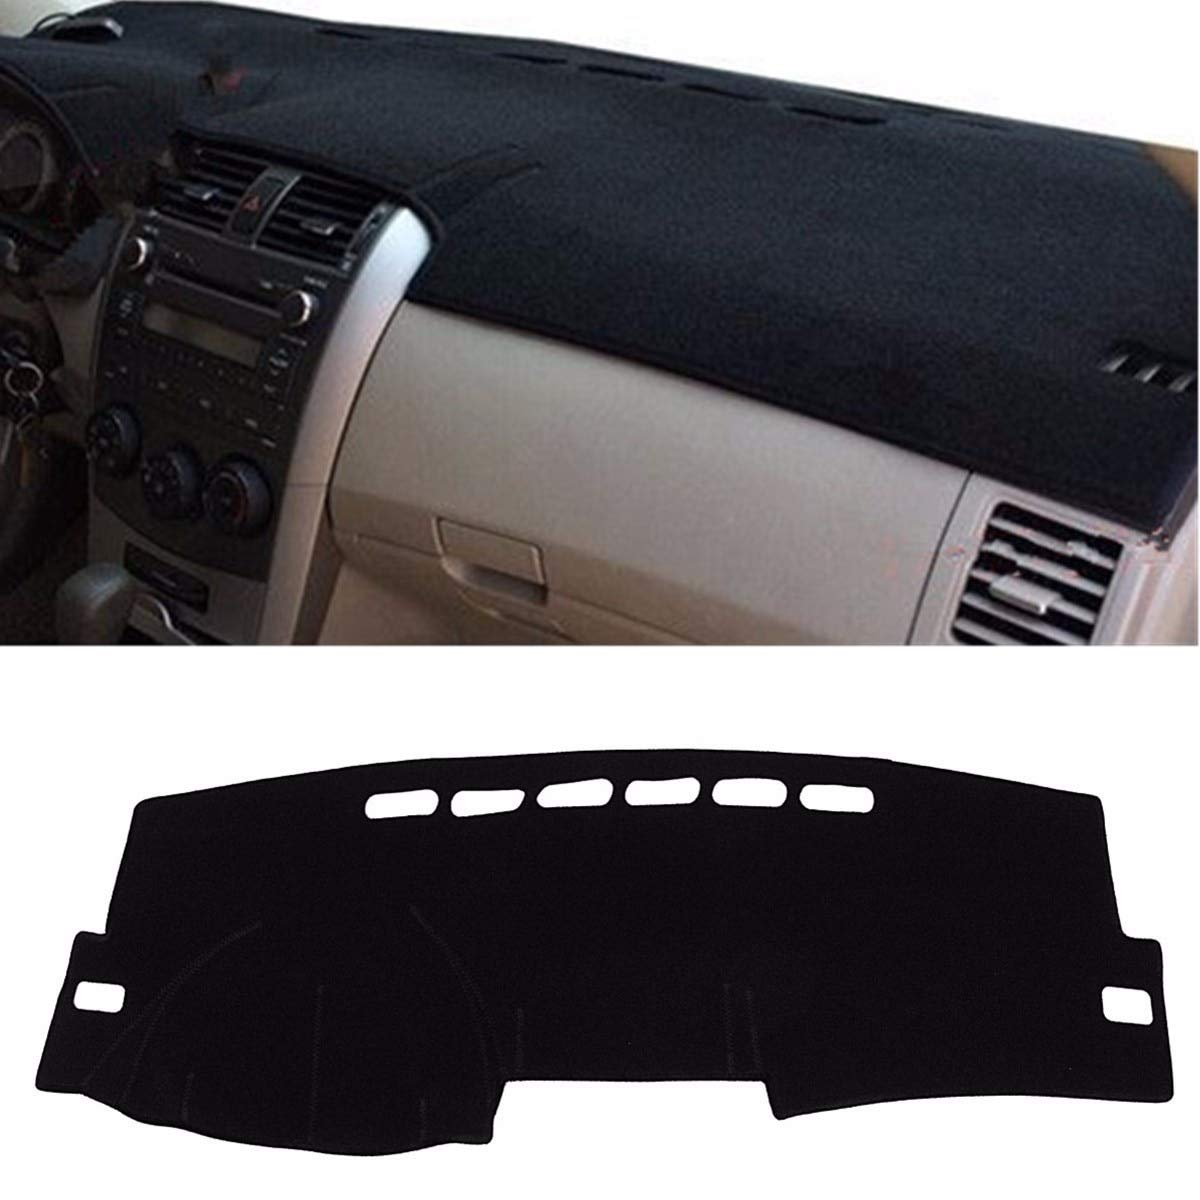 CALAP-STORE - Black 135 x 20 cm Inner Dashboard Dash Mat DashMat Sun Cover Pad for Toyota/Corolla 2007-2013